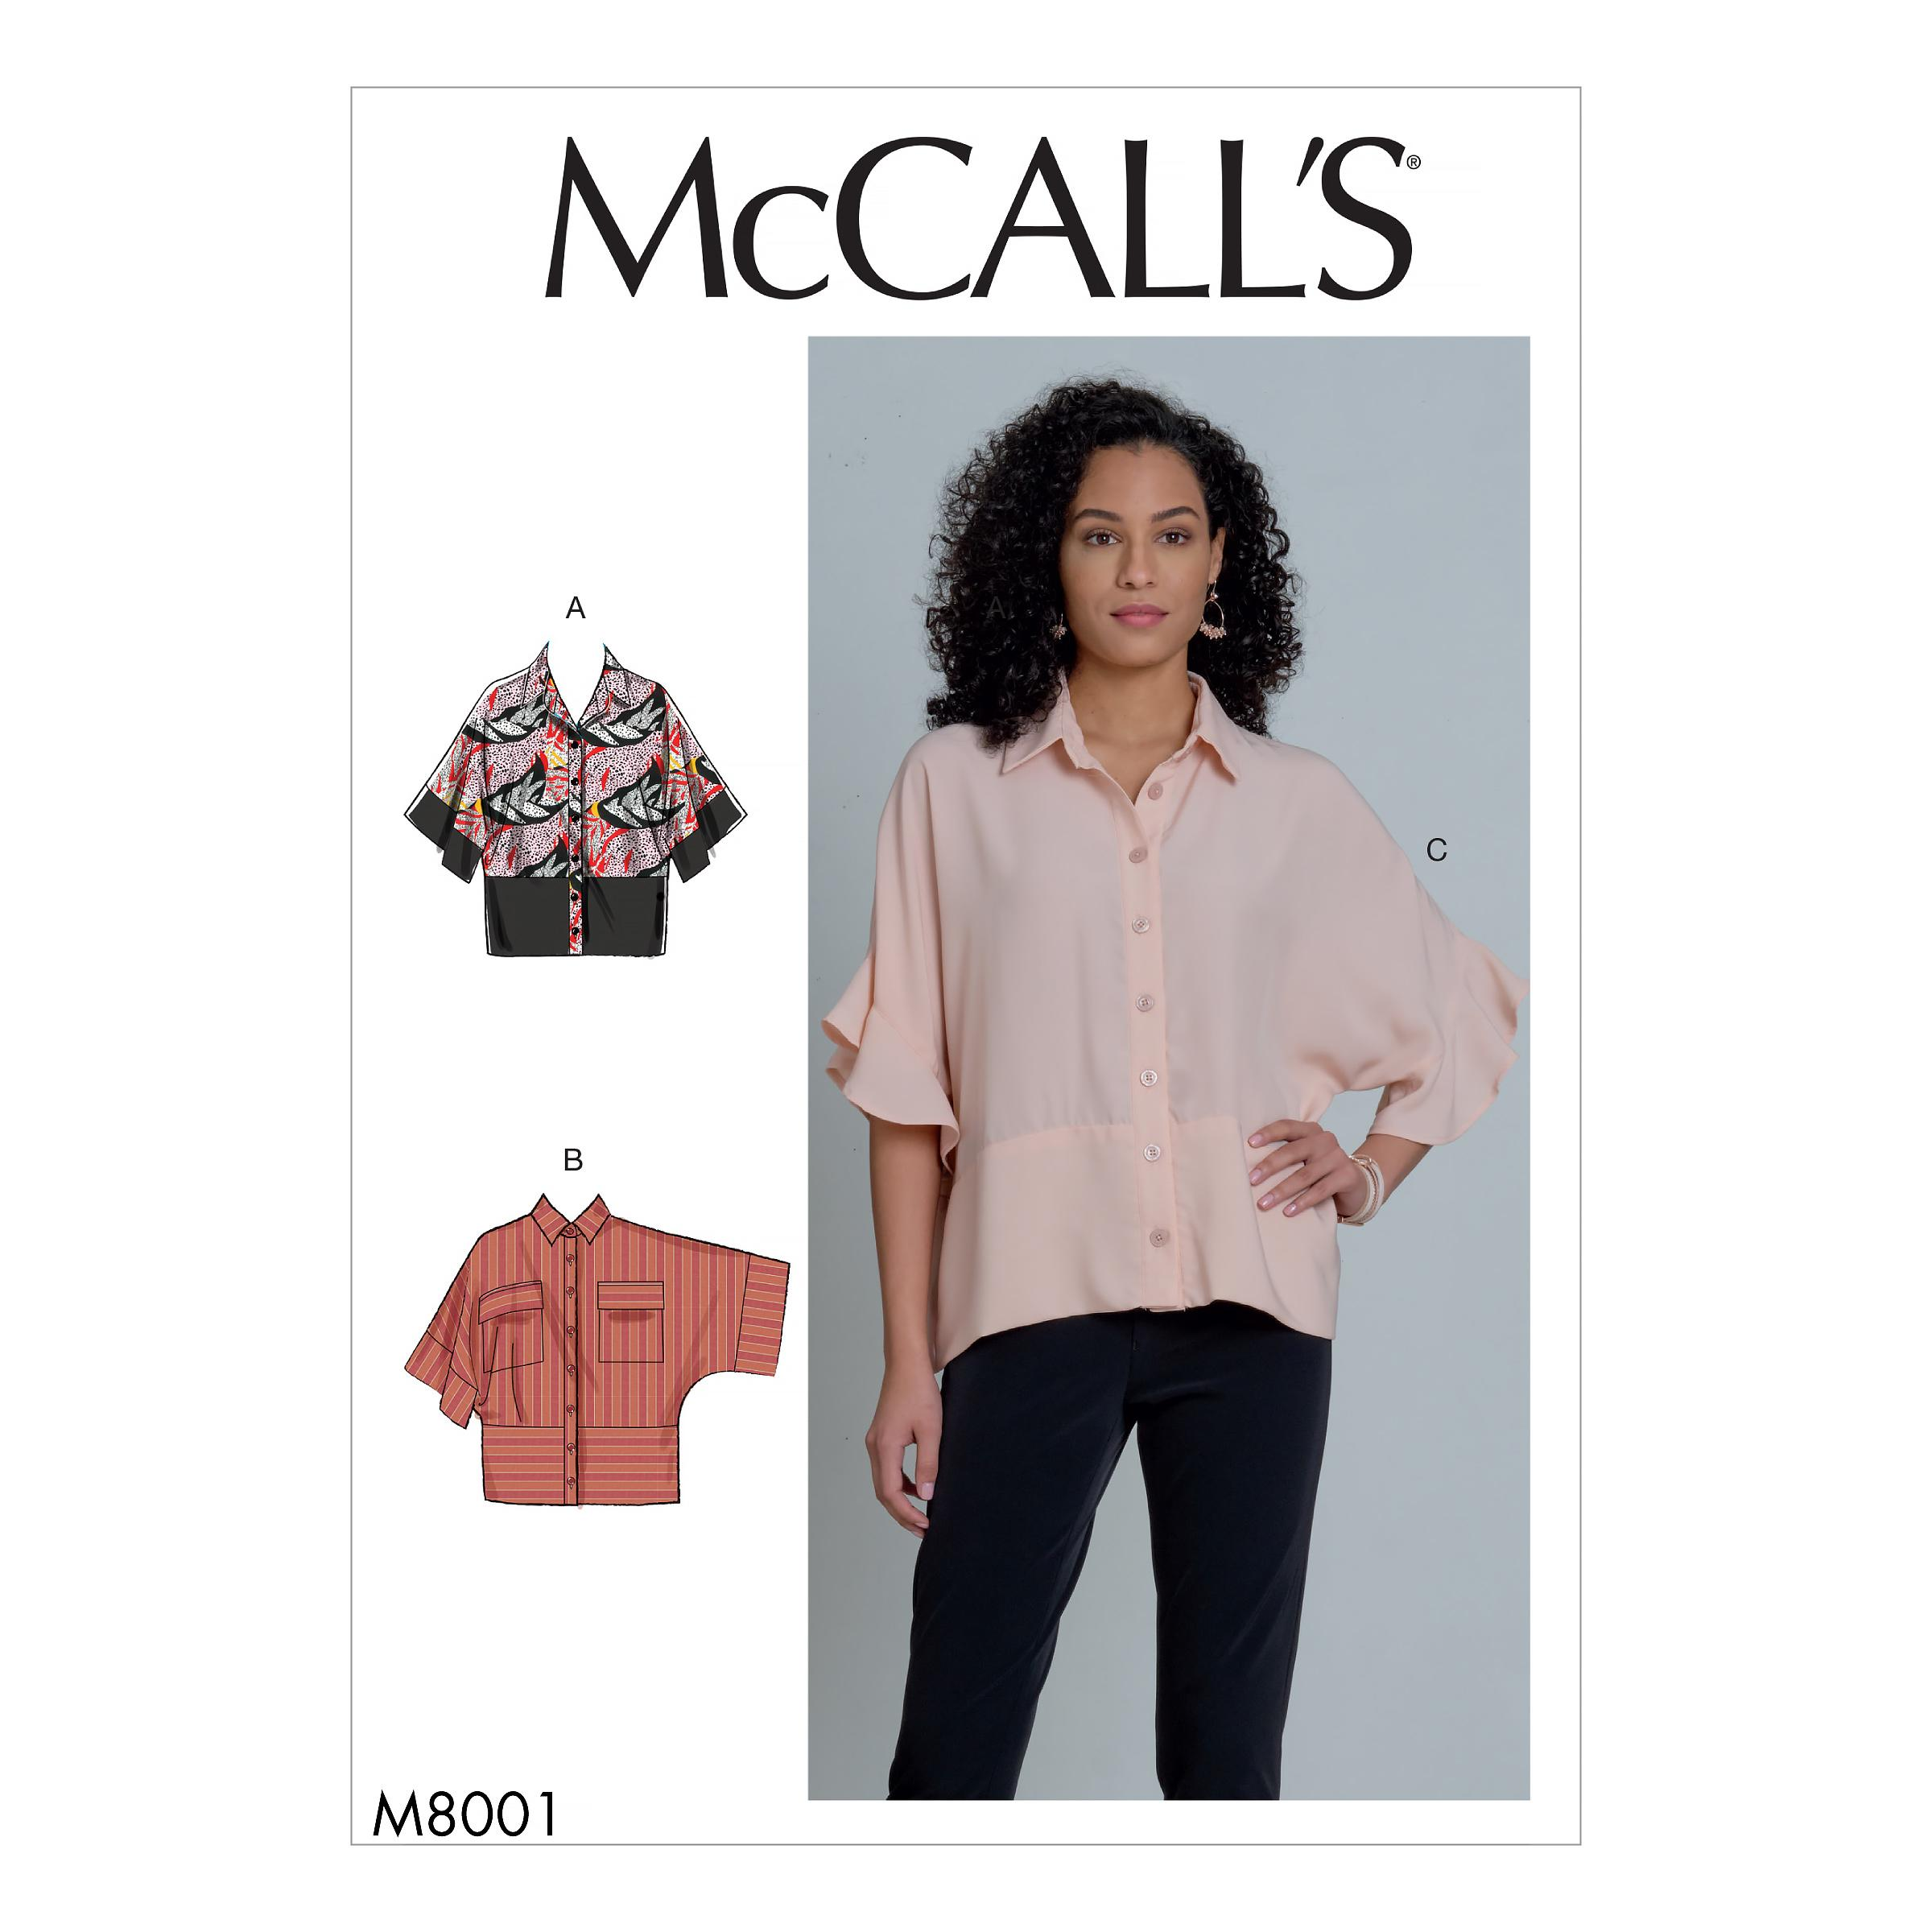 McCalls M8001 Misses Tops